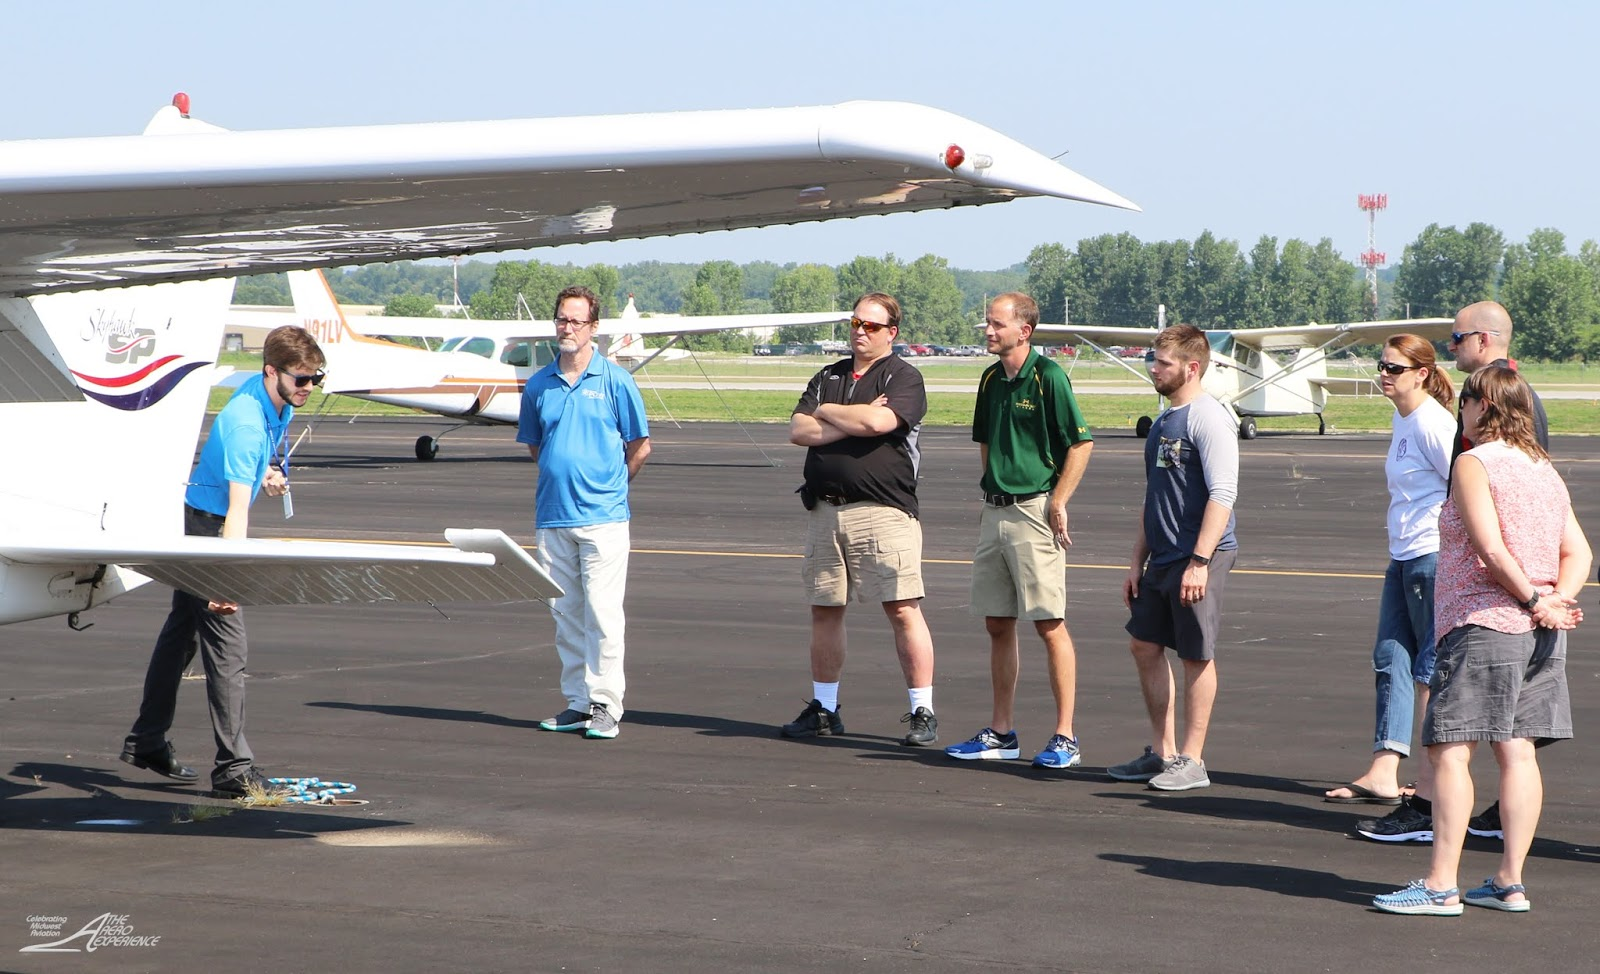 The Aero Experience Thanks Elite Aviation Spirit Of St Louis Airport And Science Center Flight Academy For Their Contribution To